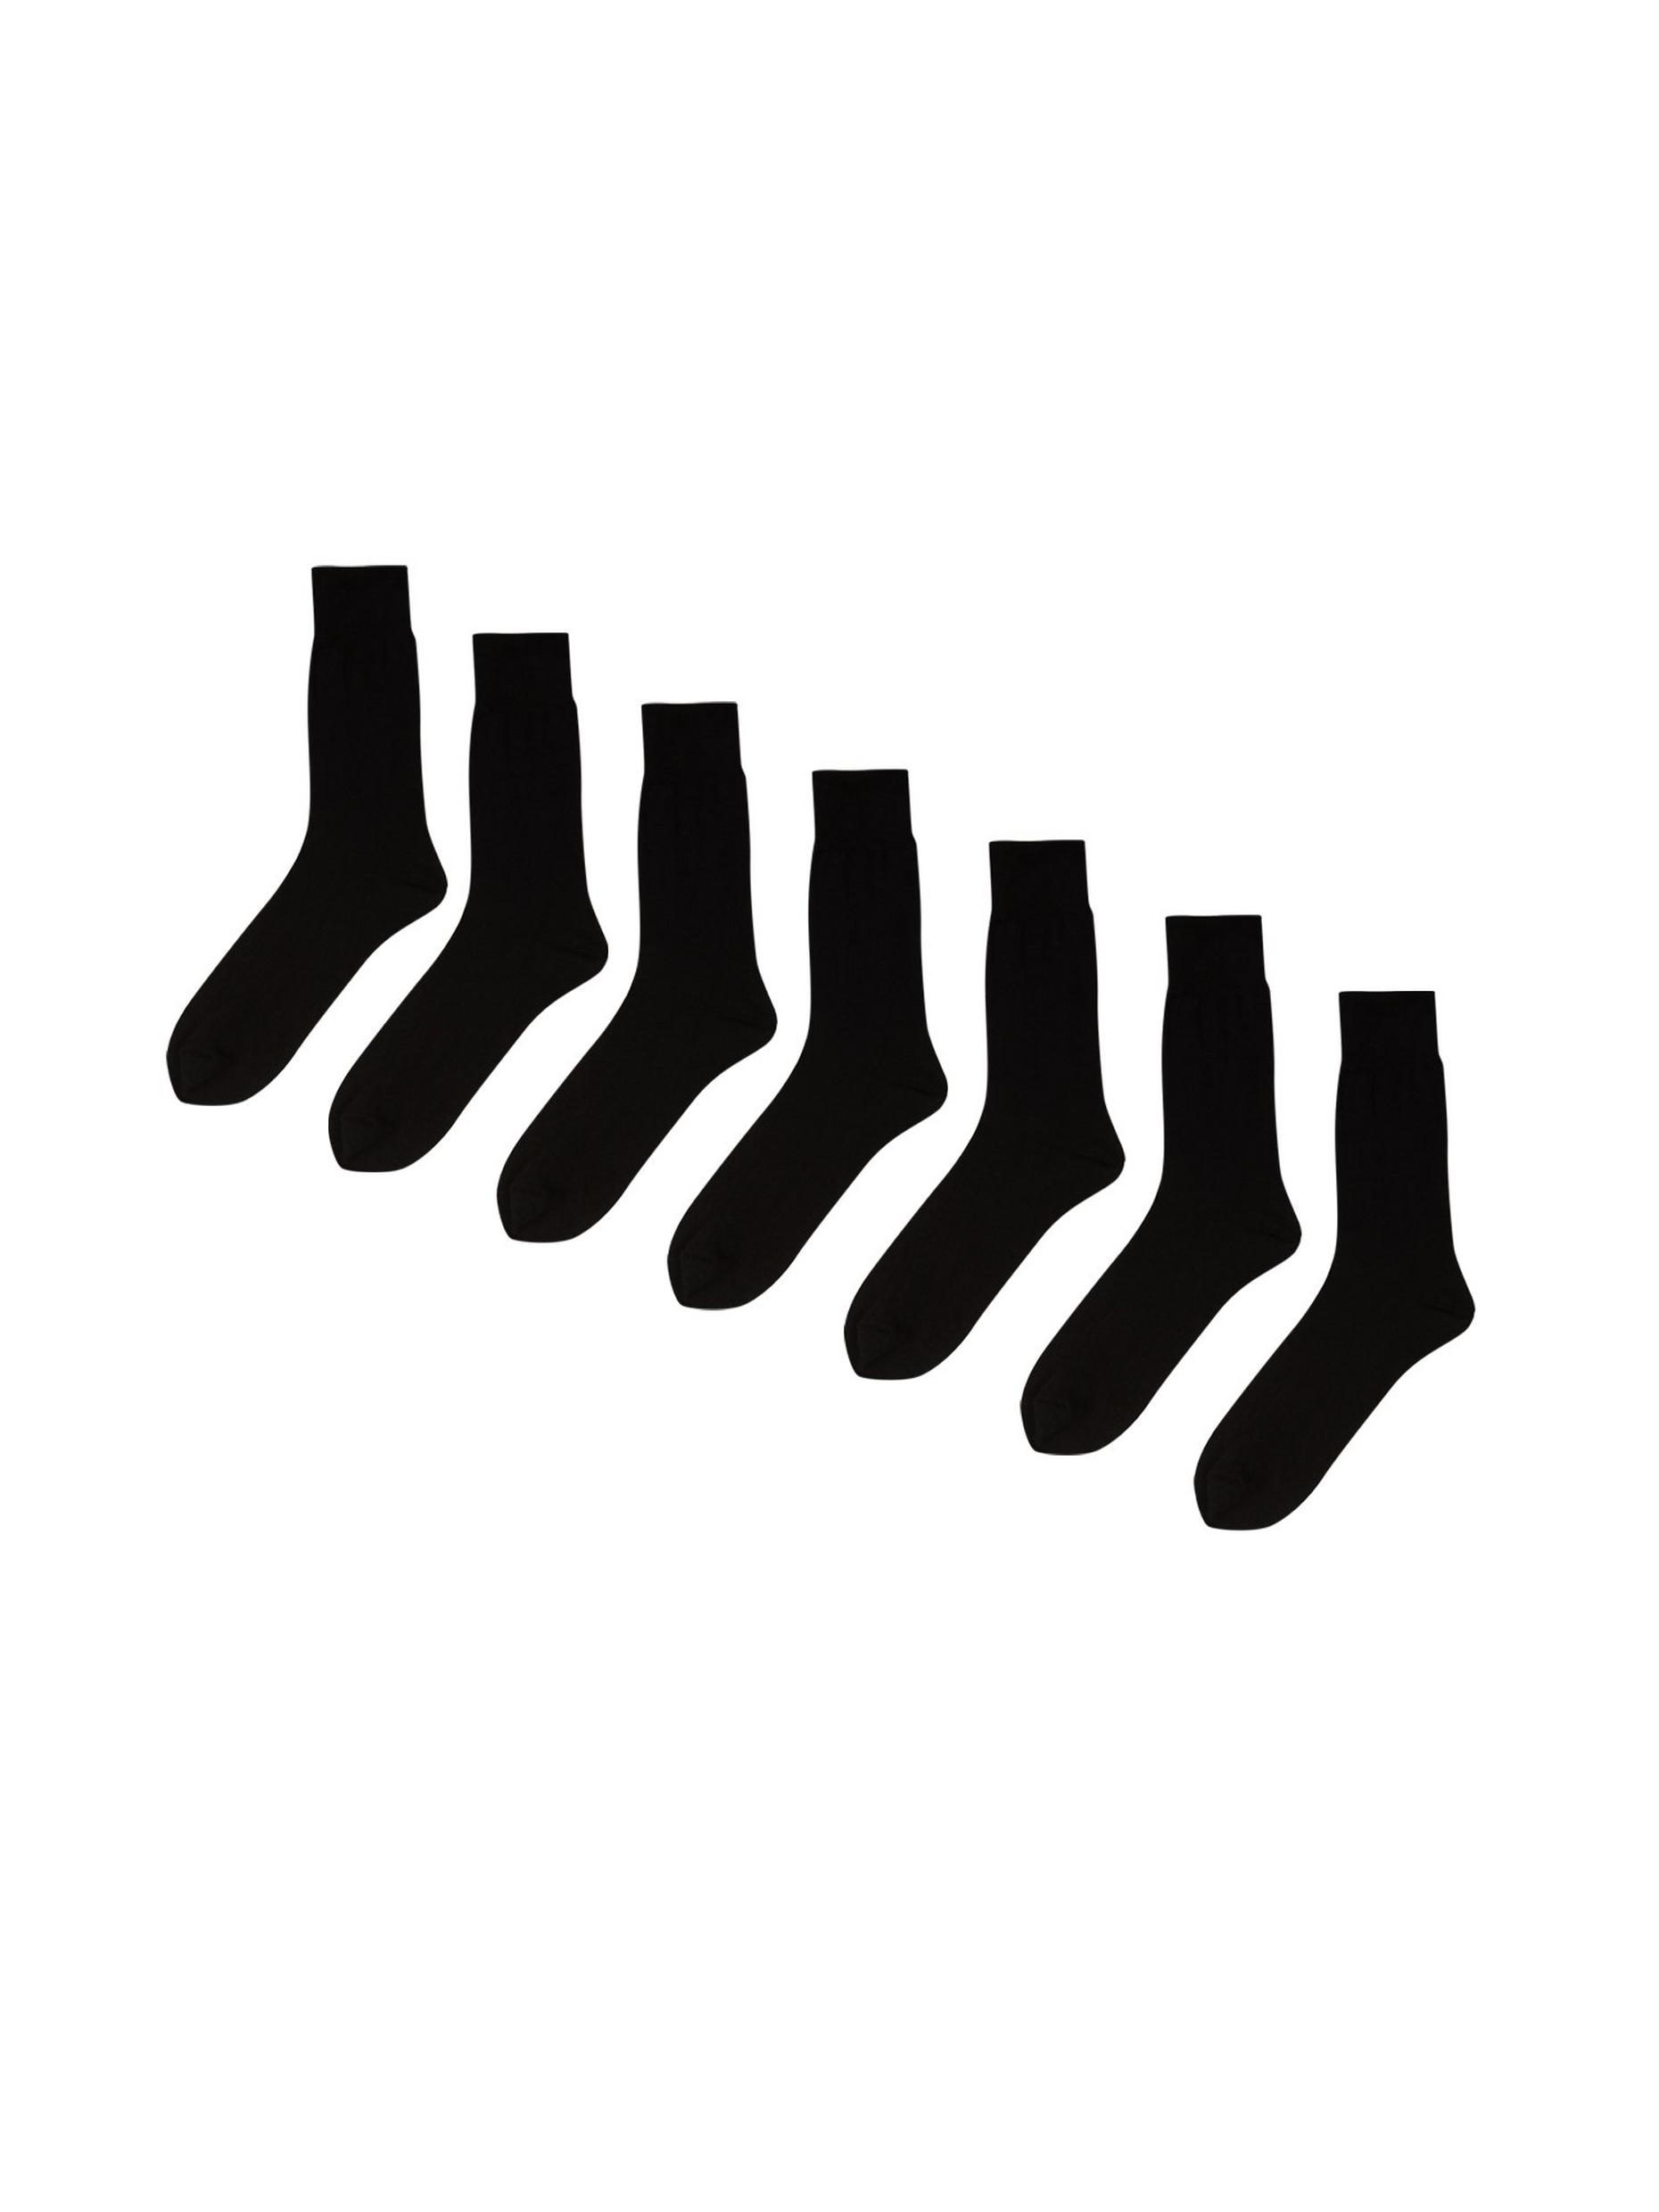 7 Pack Black Socks